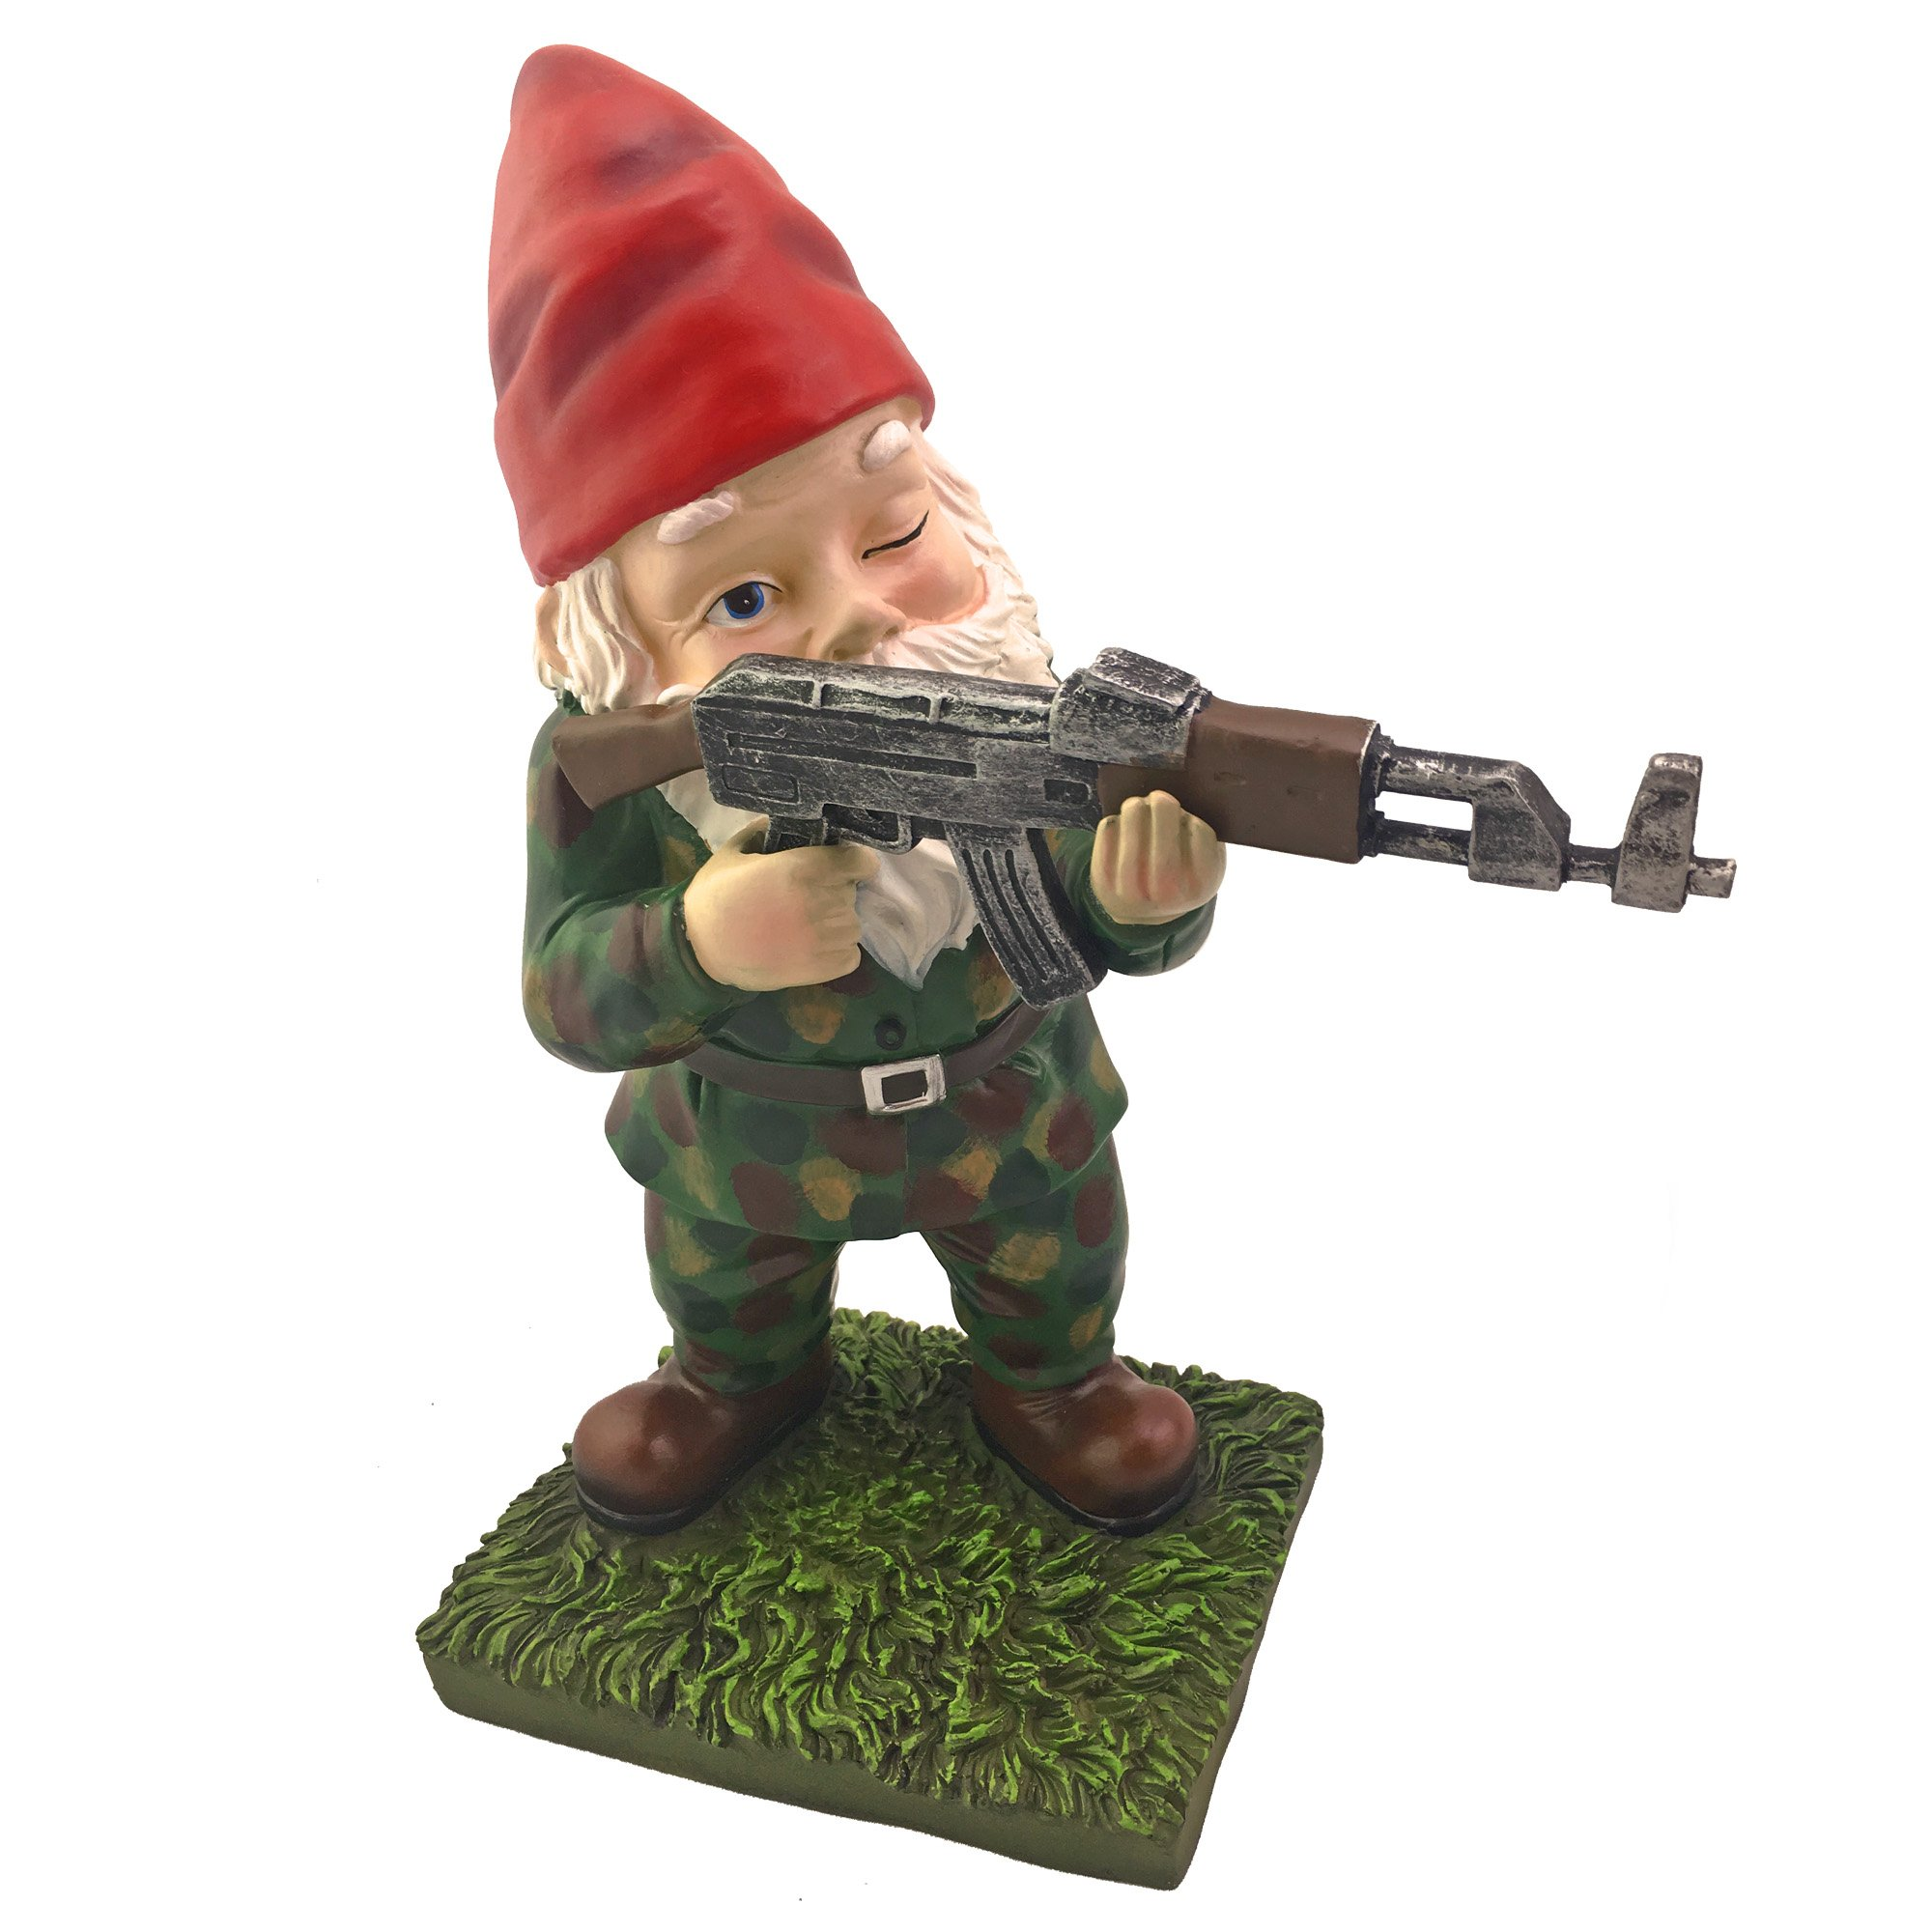 Military Garden Gnome With An AK47 | Funny Army Statue, Perfect For Gun Lovers, Military Collectors, Combat Enthusiasts & Army Men | Indoor & Outdoor Lawn Yard Decor (Standing, Traditional)